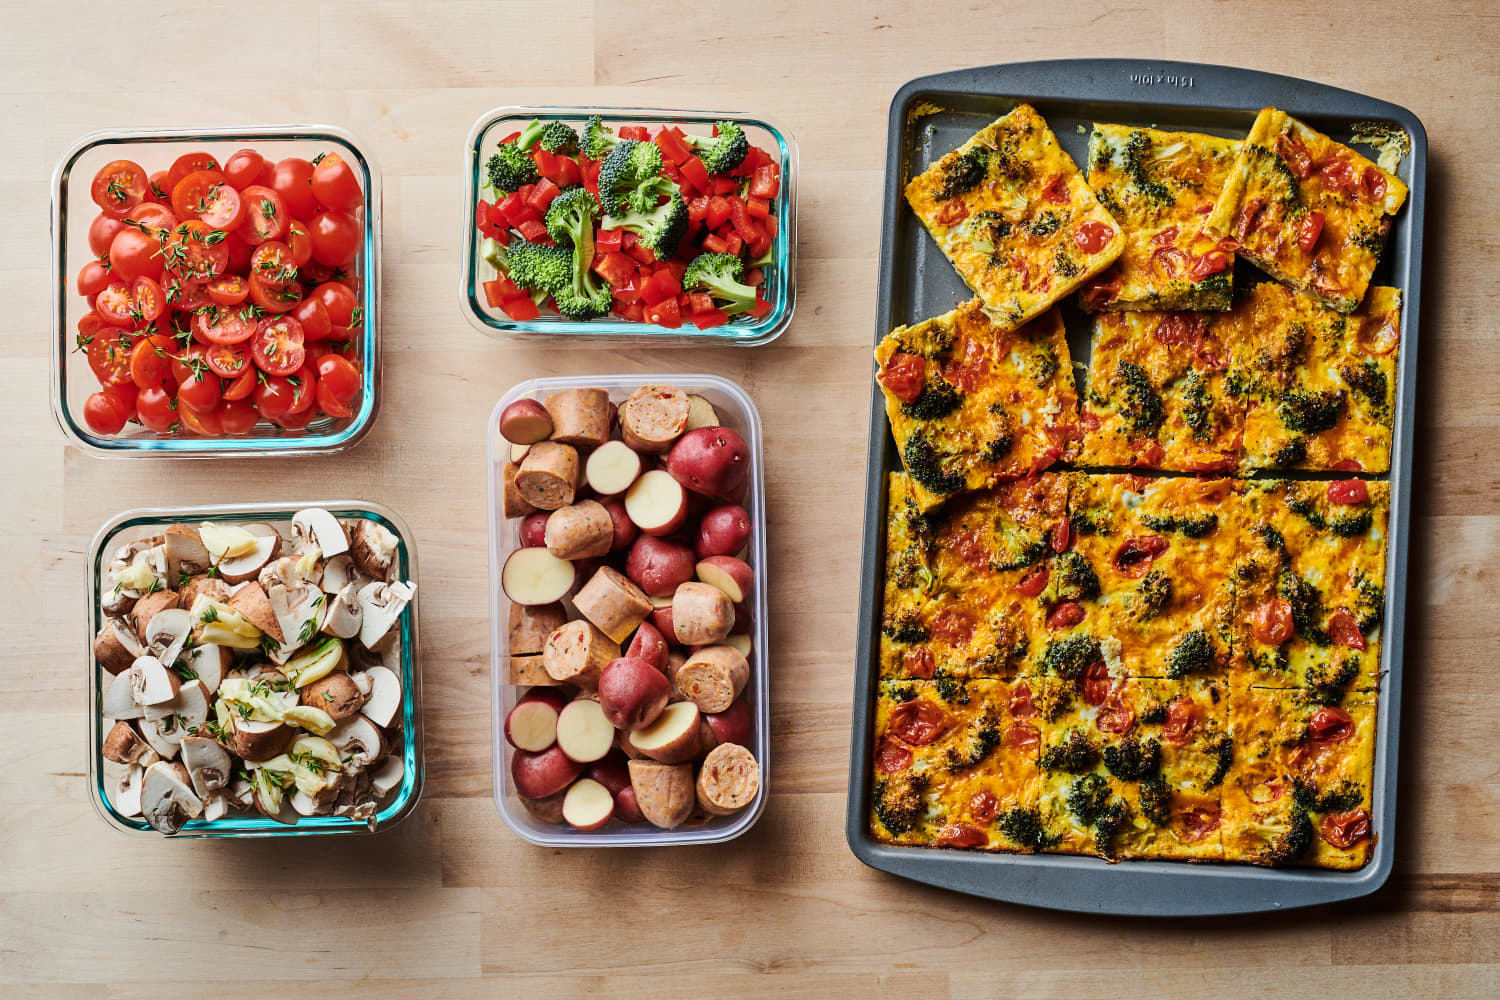 Meal Prep Plan: How I Prep a Week of Easy Sheet Pan Dinners in Just 1 Hour